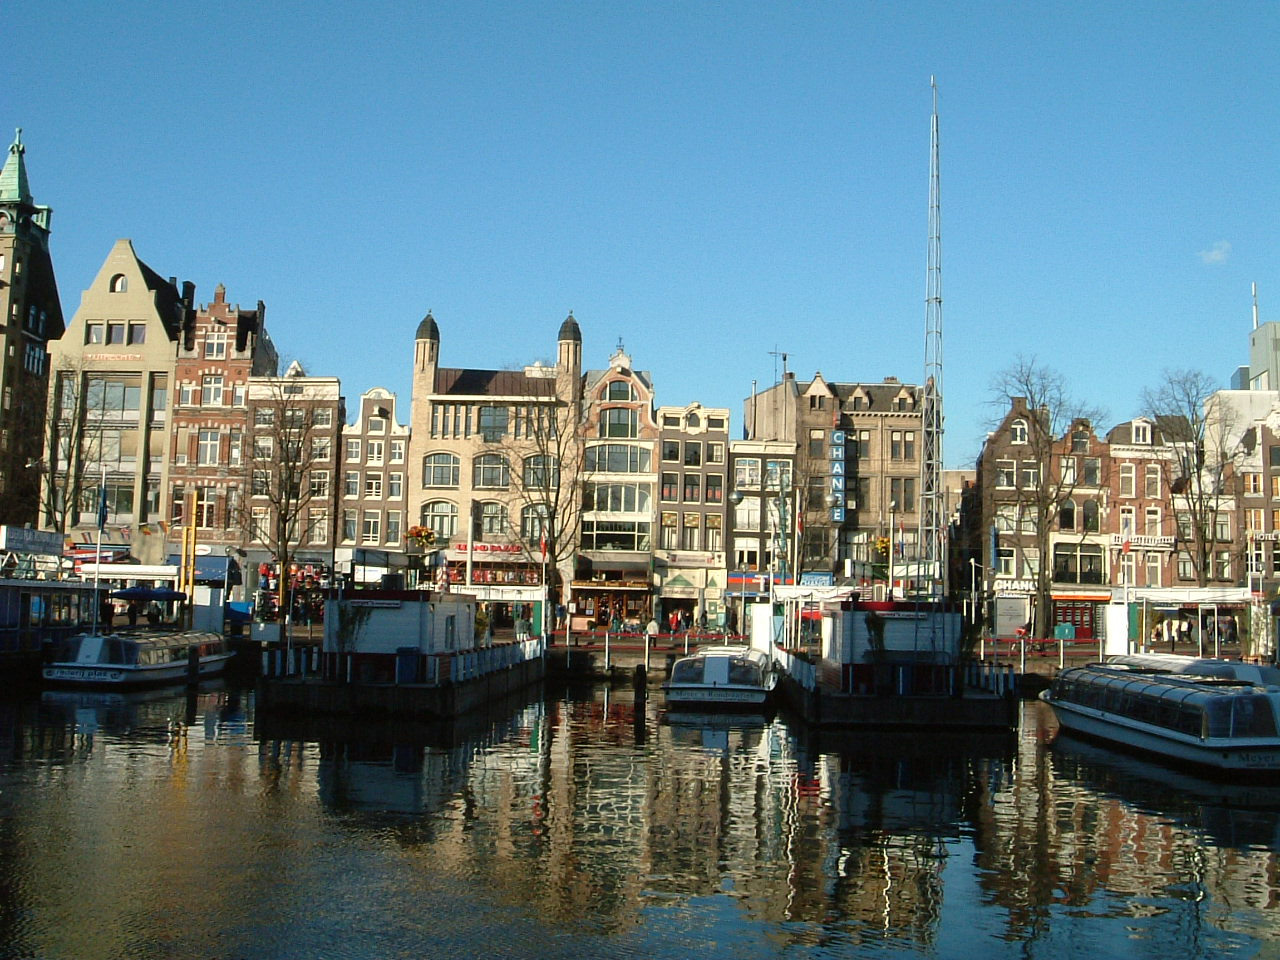 Amsterdam Netherlands  City pictures : Amsterdam The Netherlands picture, Amsterdam The Netherlands photo ...